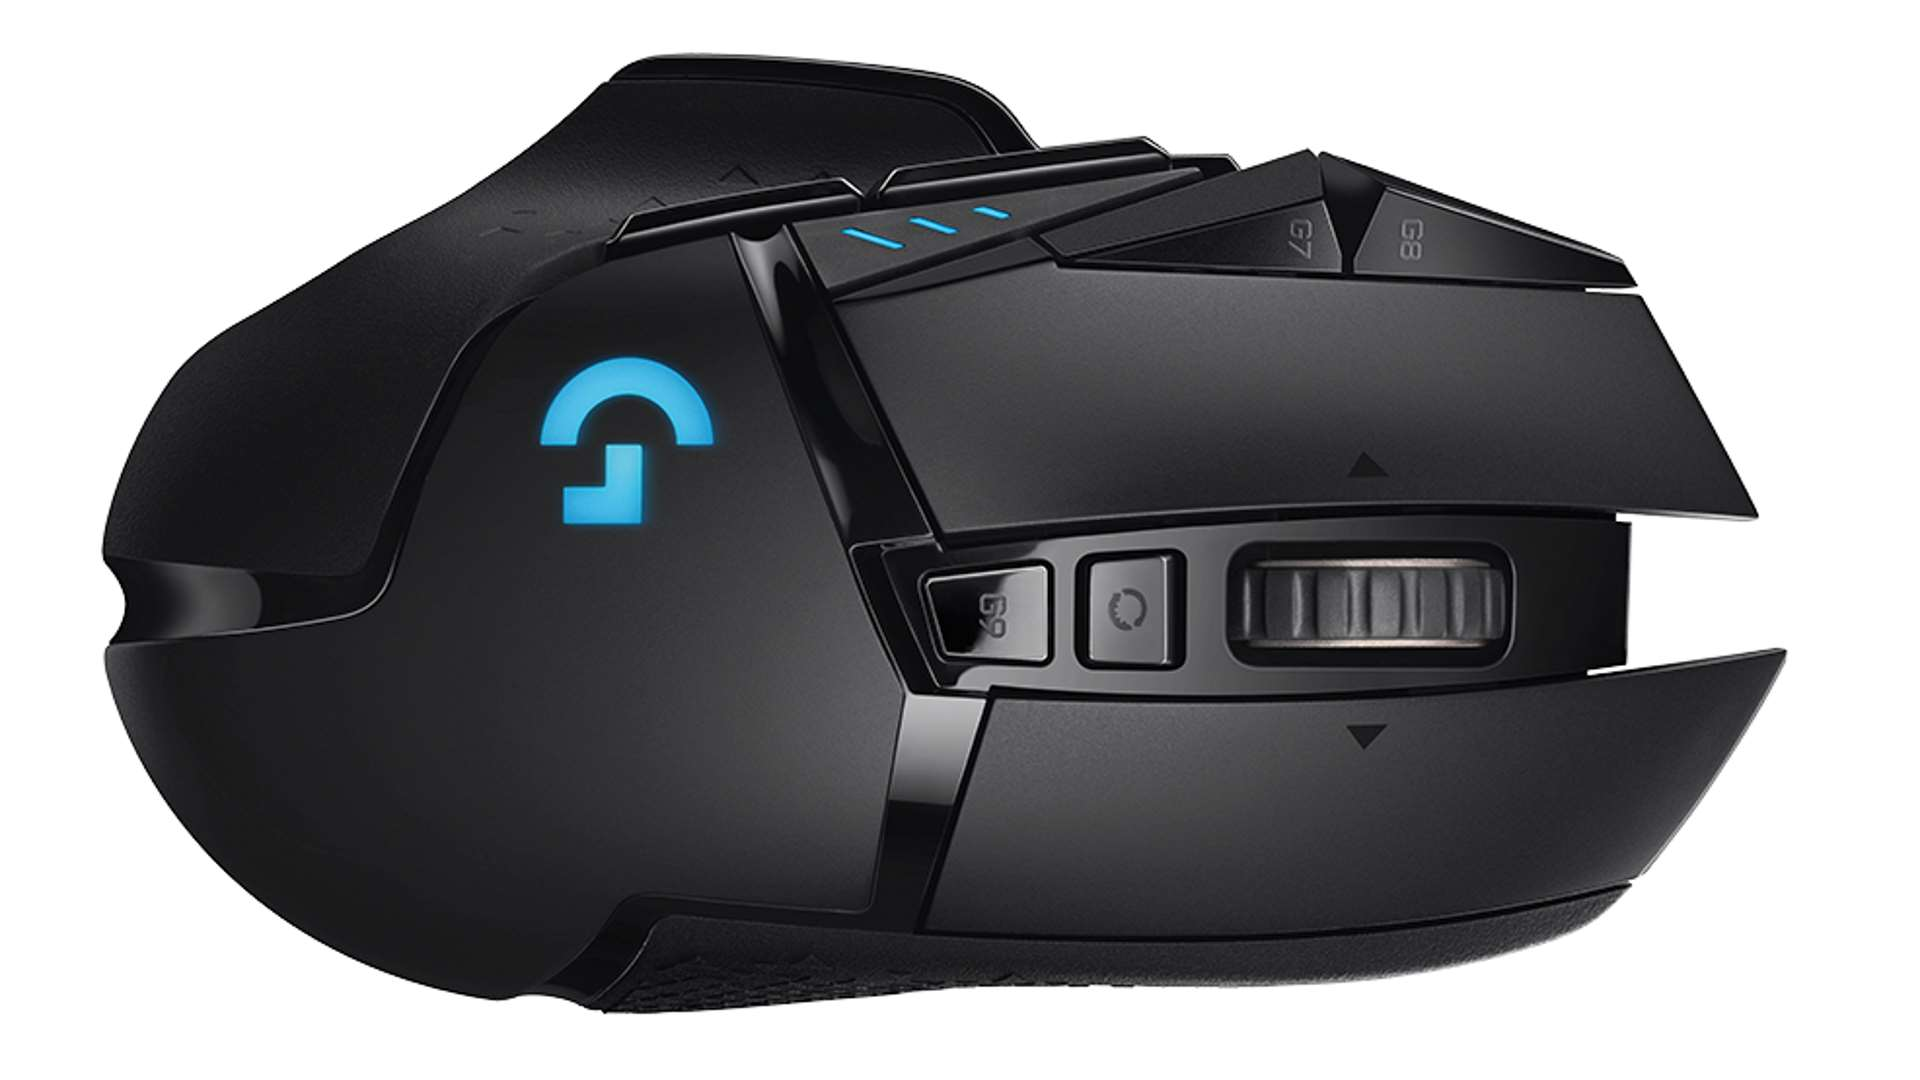 Logitech's new wireless G502 Lightspeed gaming mouse is no